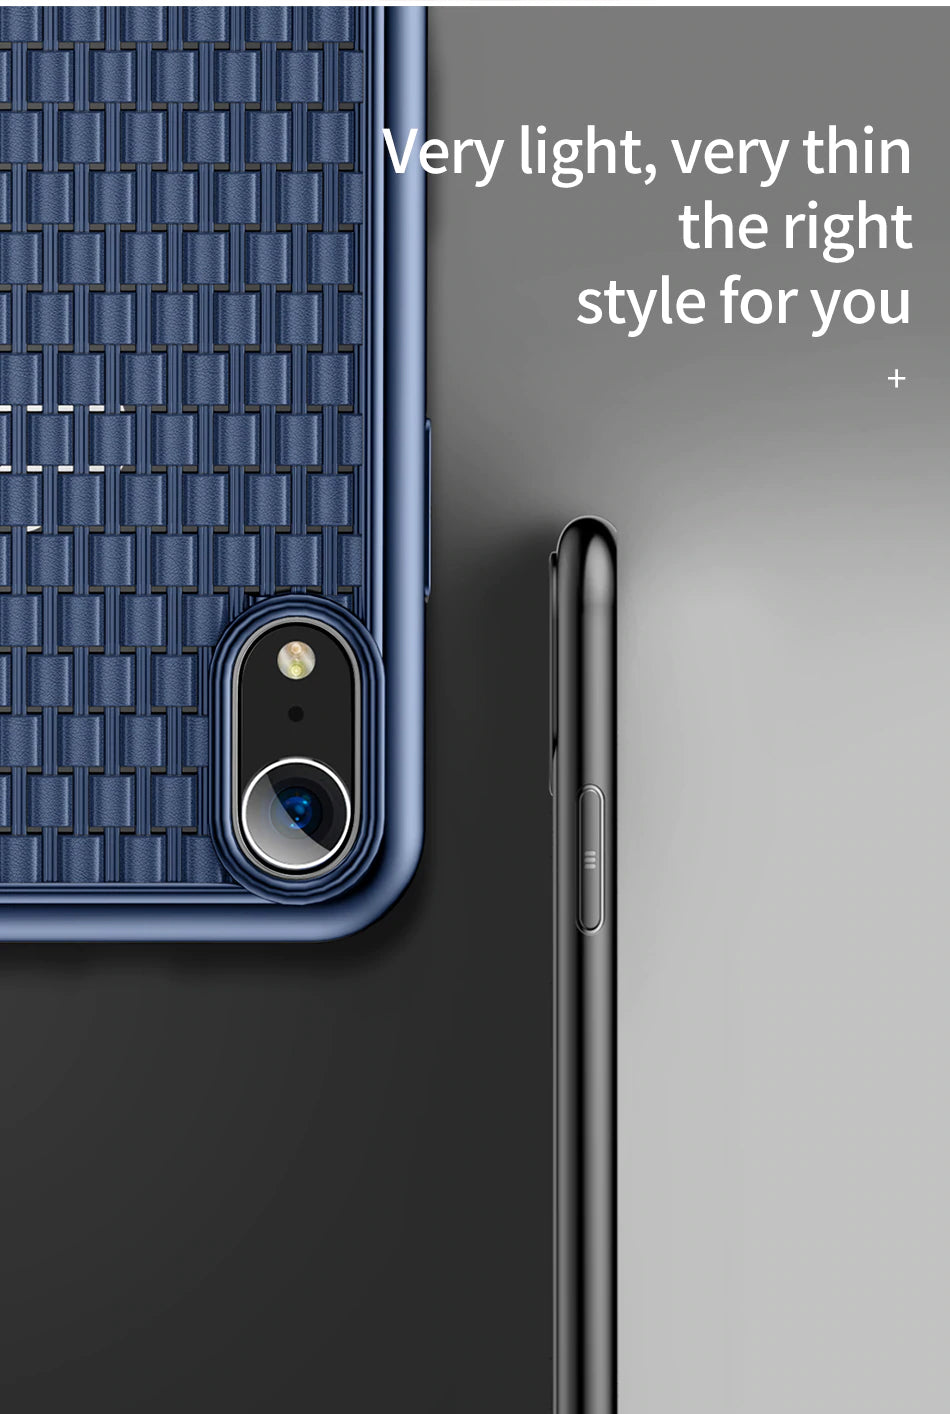 Luxury Weaved Designer Case For iPhone Elegant Grid Pattern Soft Silicone Phone Case For iPhone Xs Xs Max XR 2018 Xs XR